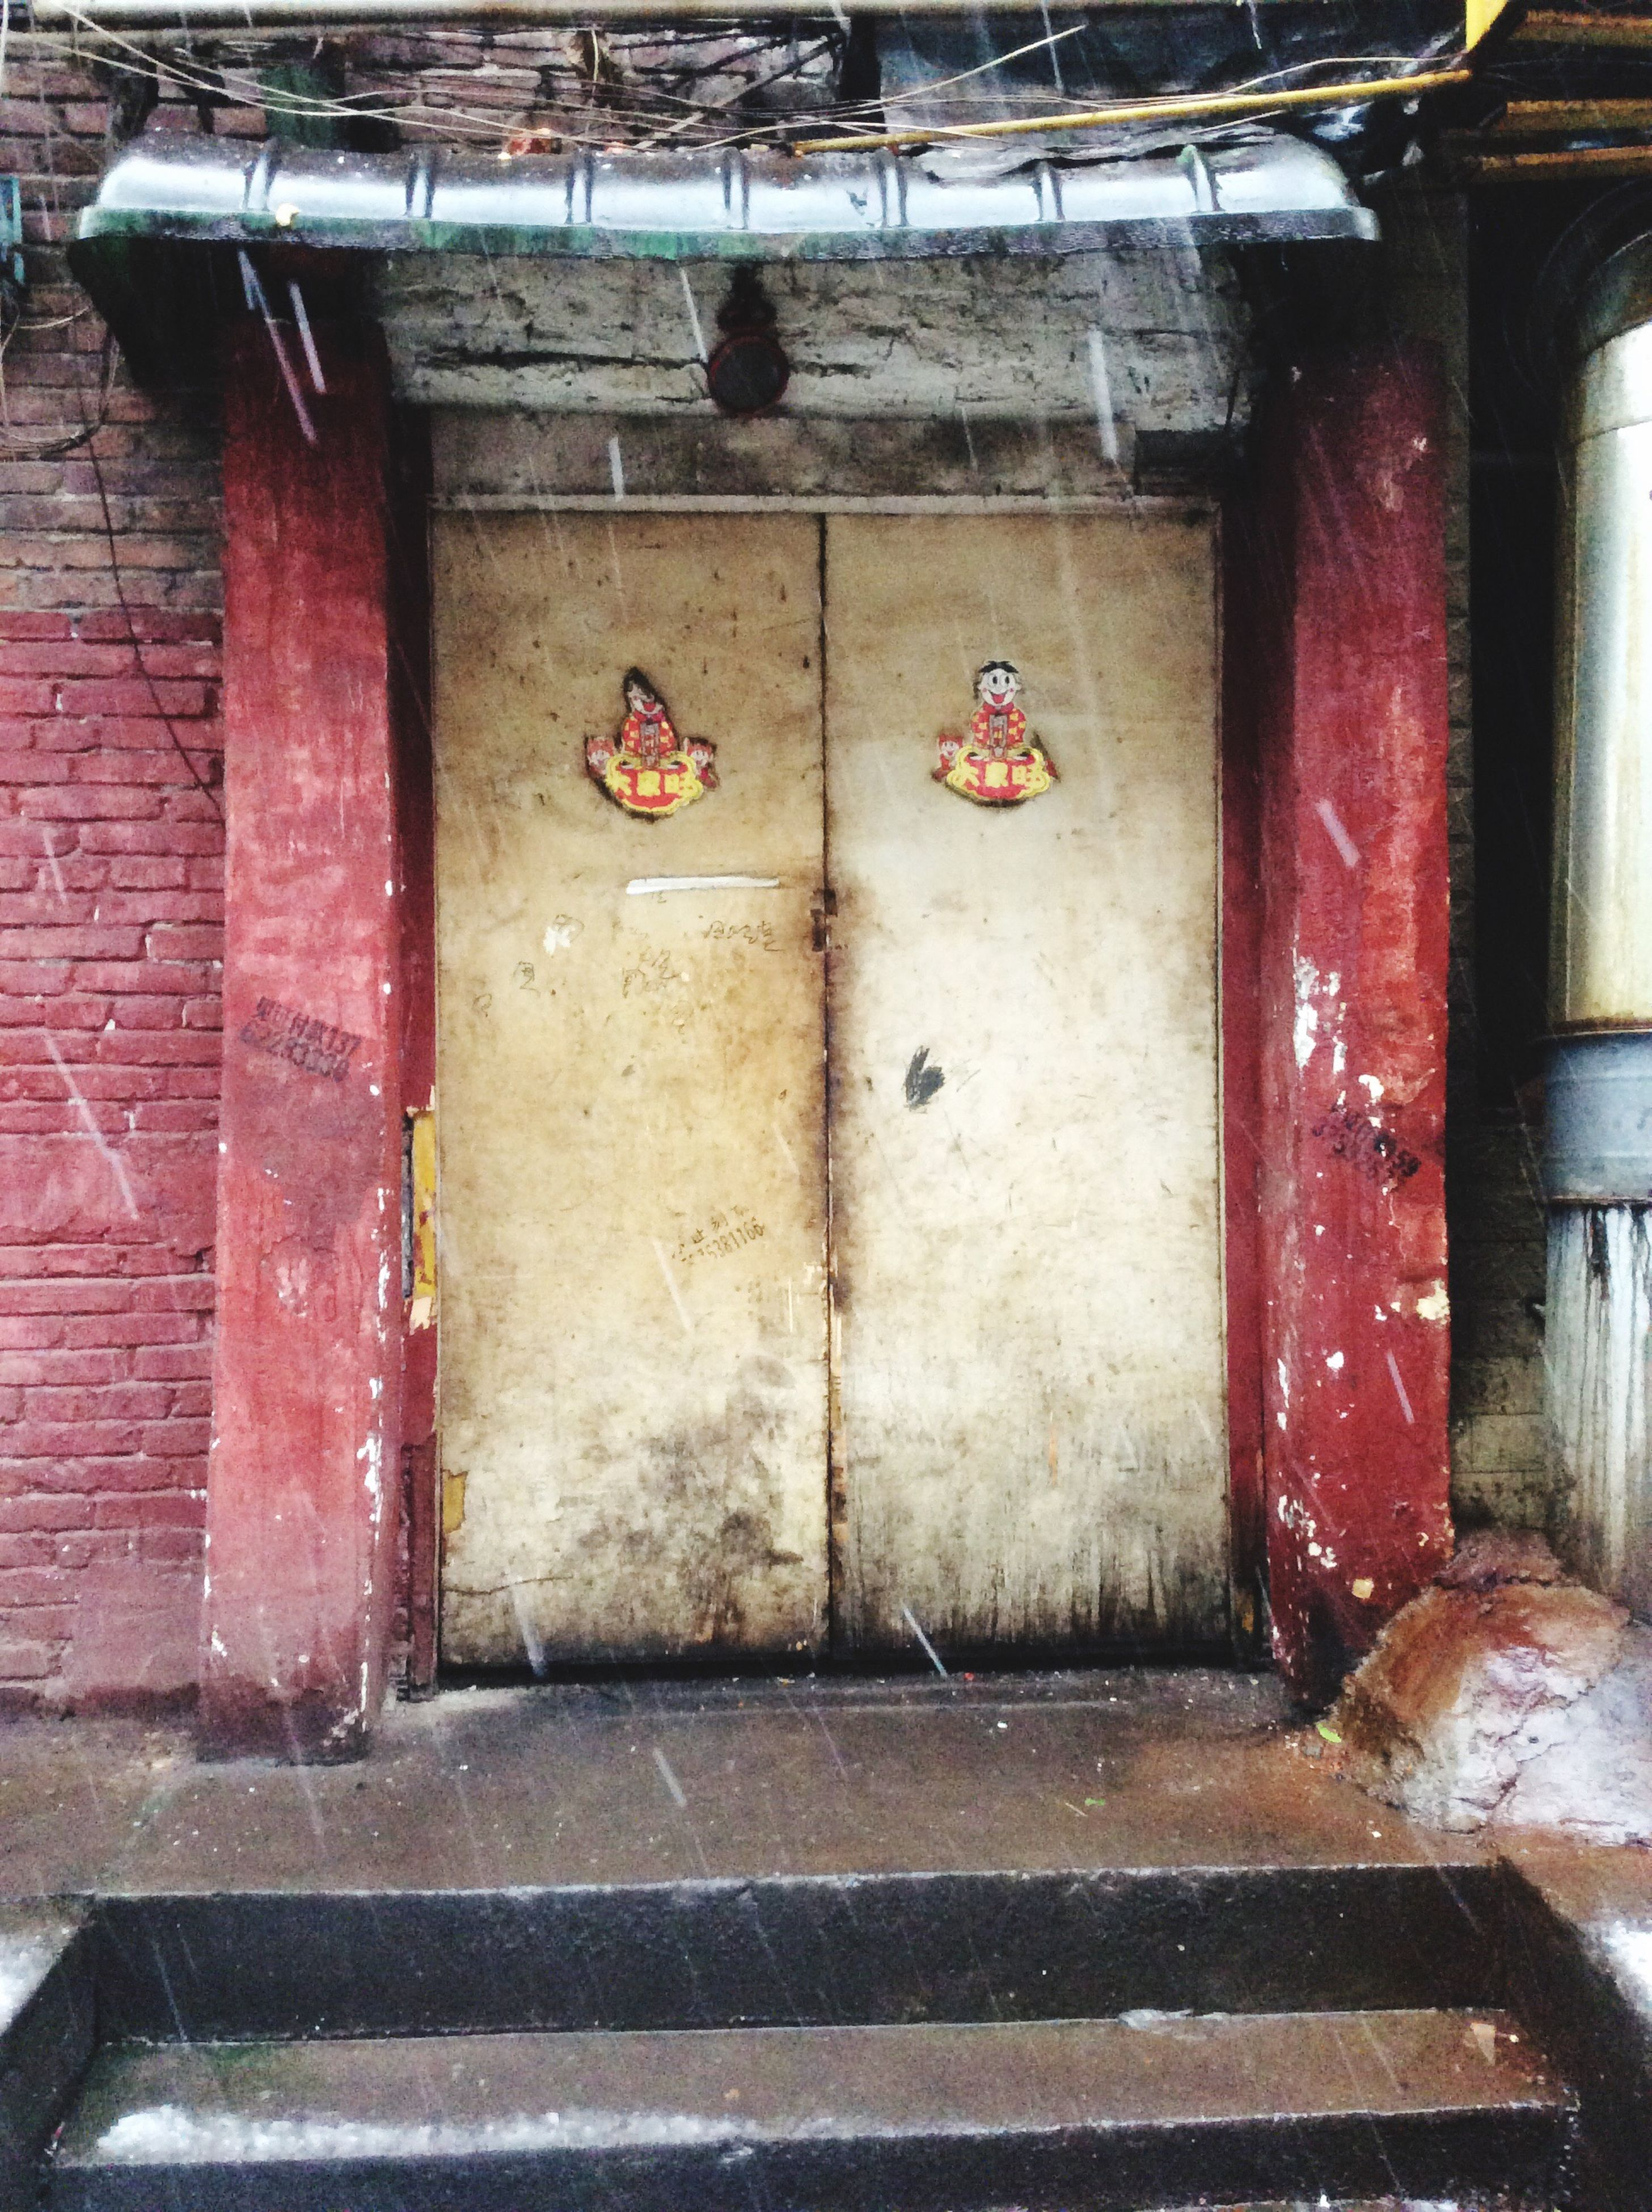 architecture, built structure, door, building exterior, closed, wall - building feature, old, house, entrance, red, weathered, wall, abandoned, day, no people, outdoors, sidewalk, empty, street, damaged